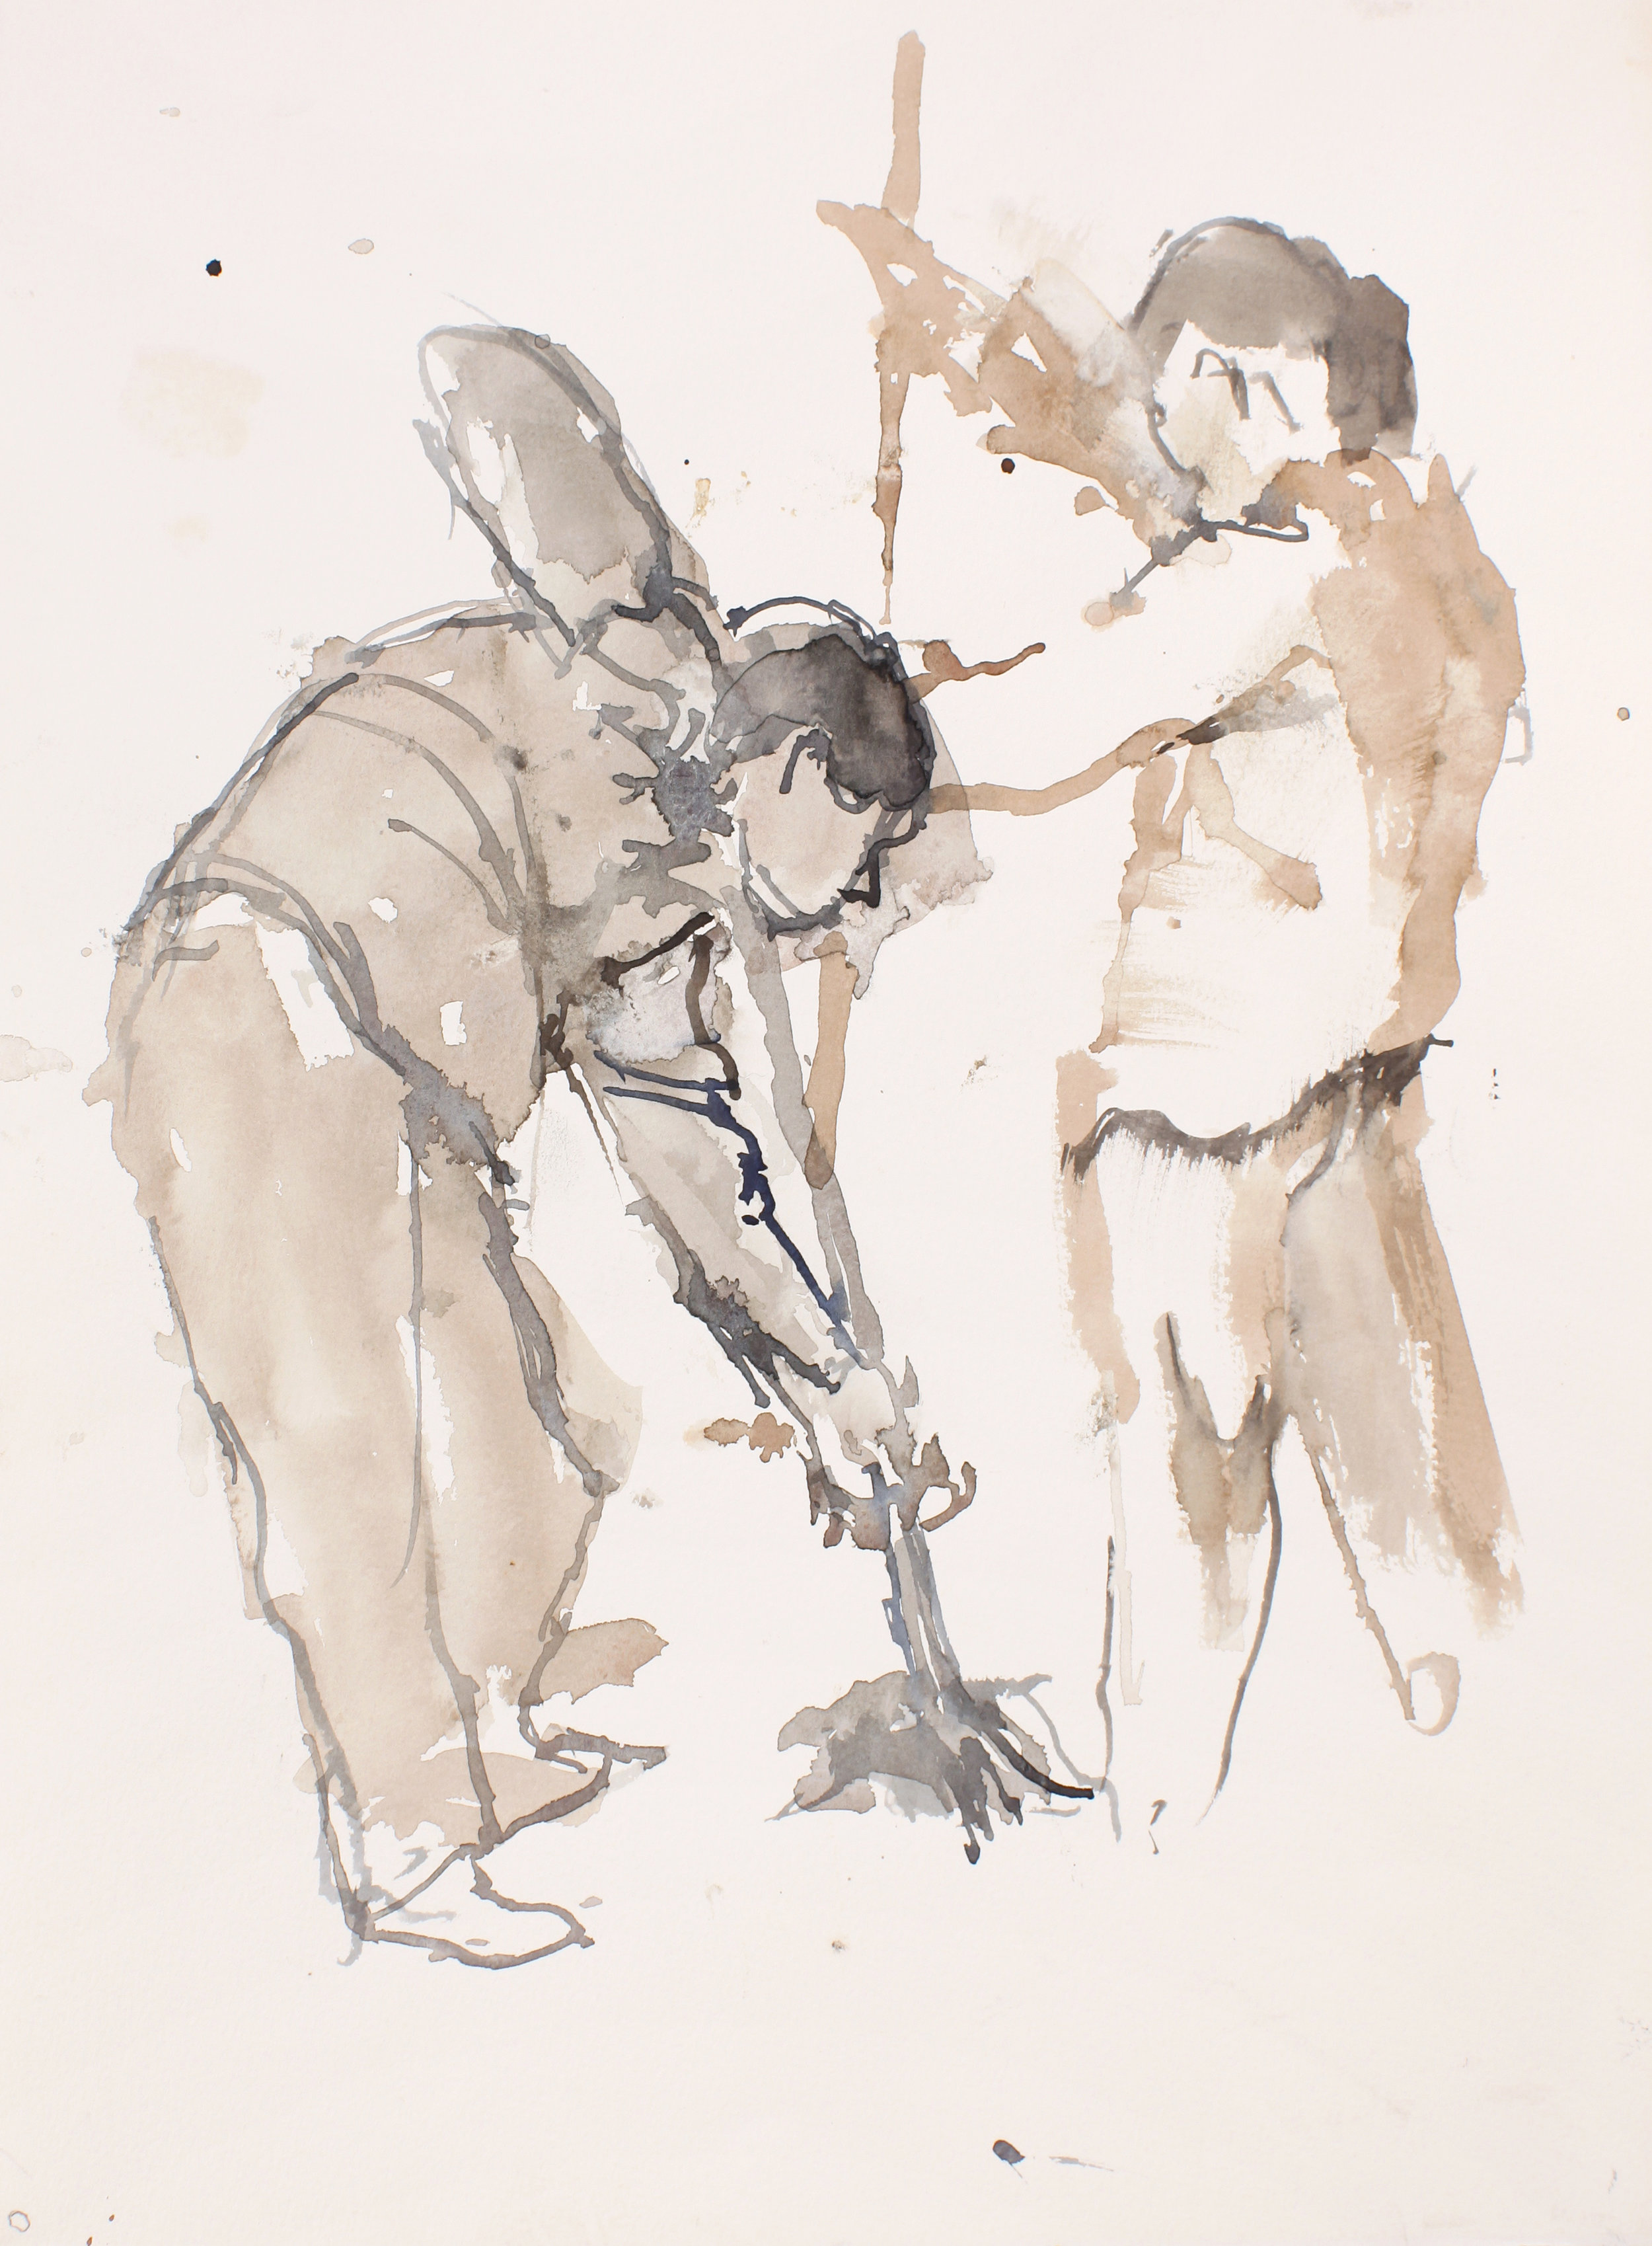 2005_Study_for_Cleaners_with_Two_Figures_Watercolour_on_Paper_15x11in_WPF088.jpg